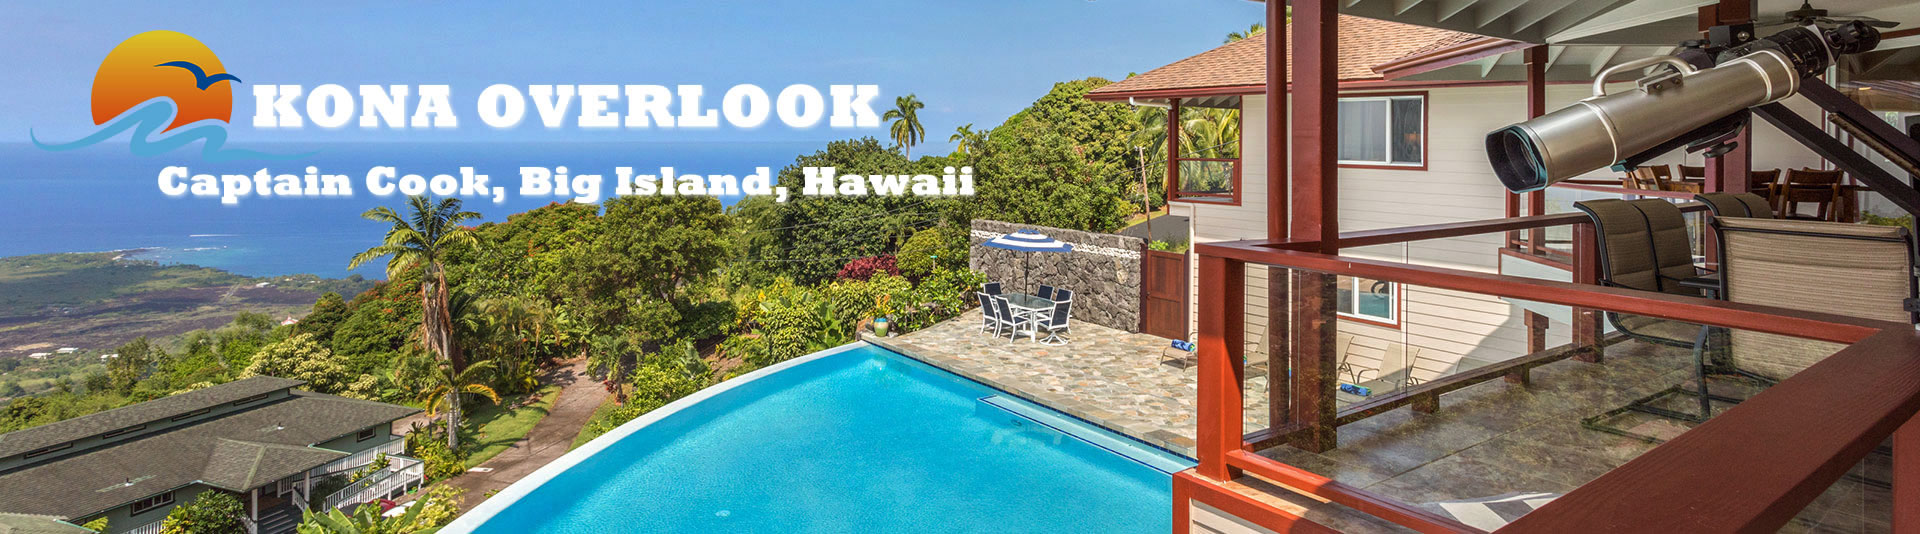 kona overlook hawaii header